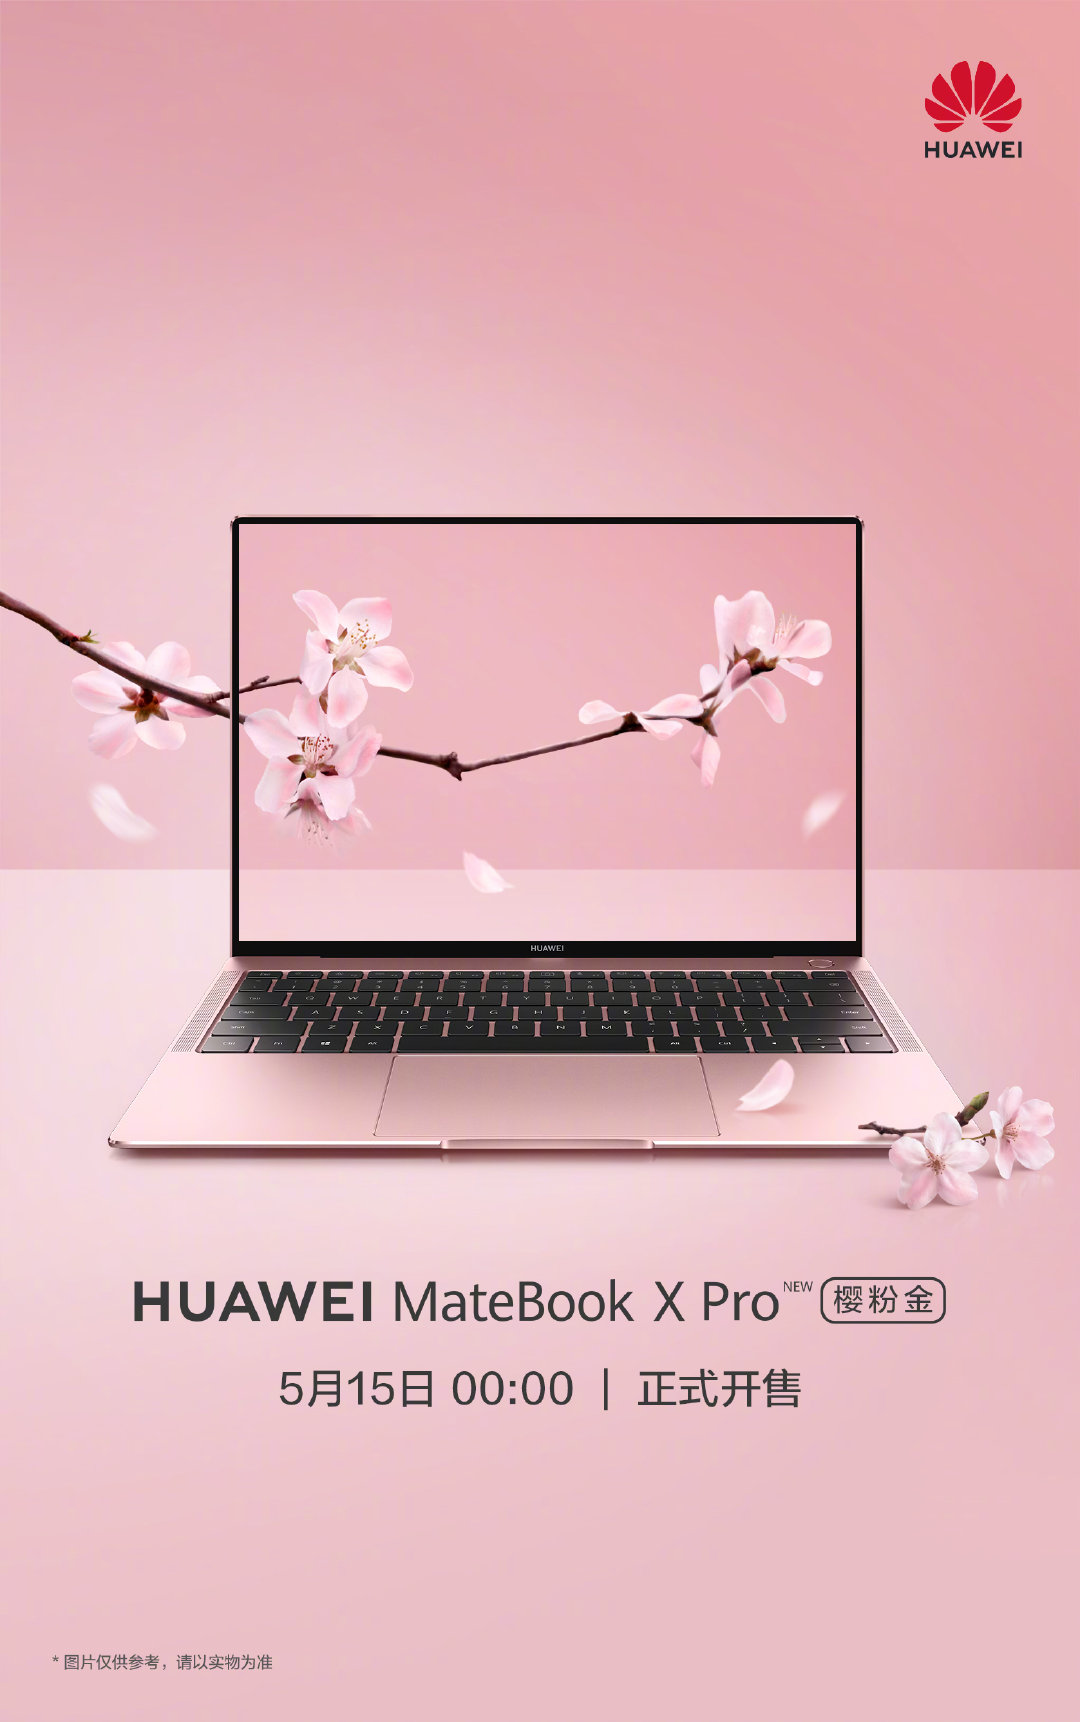 Huawei Matebook X Pro (2019) is now available in Sakura Pink color